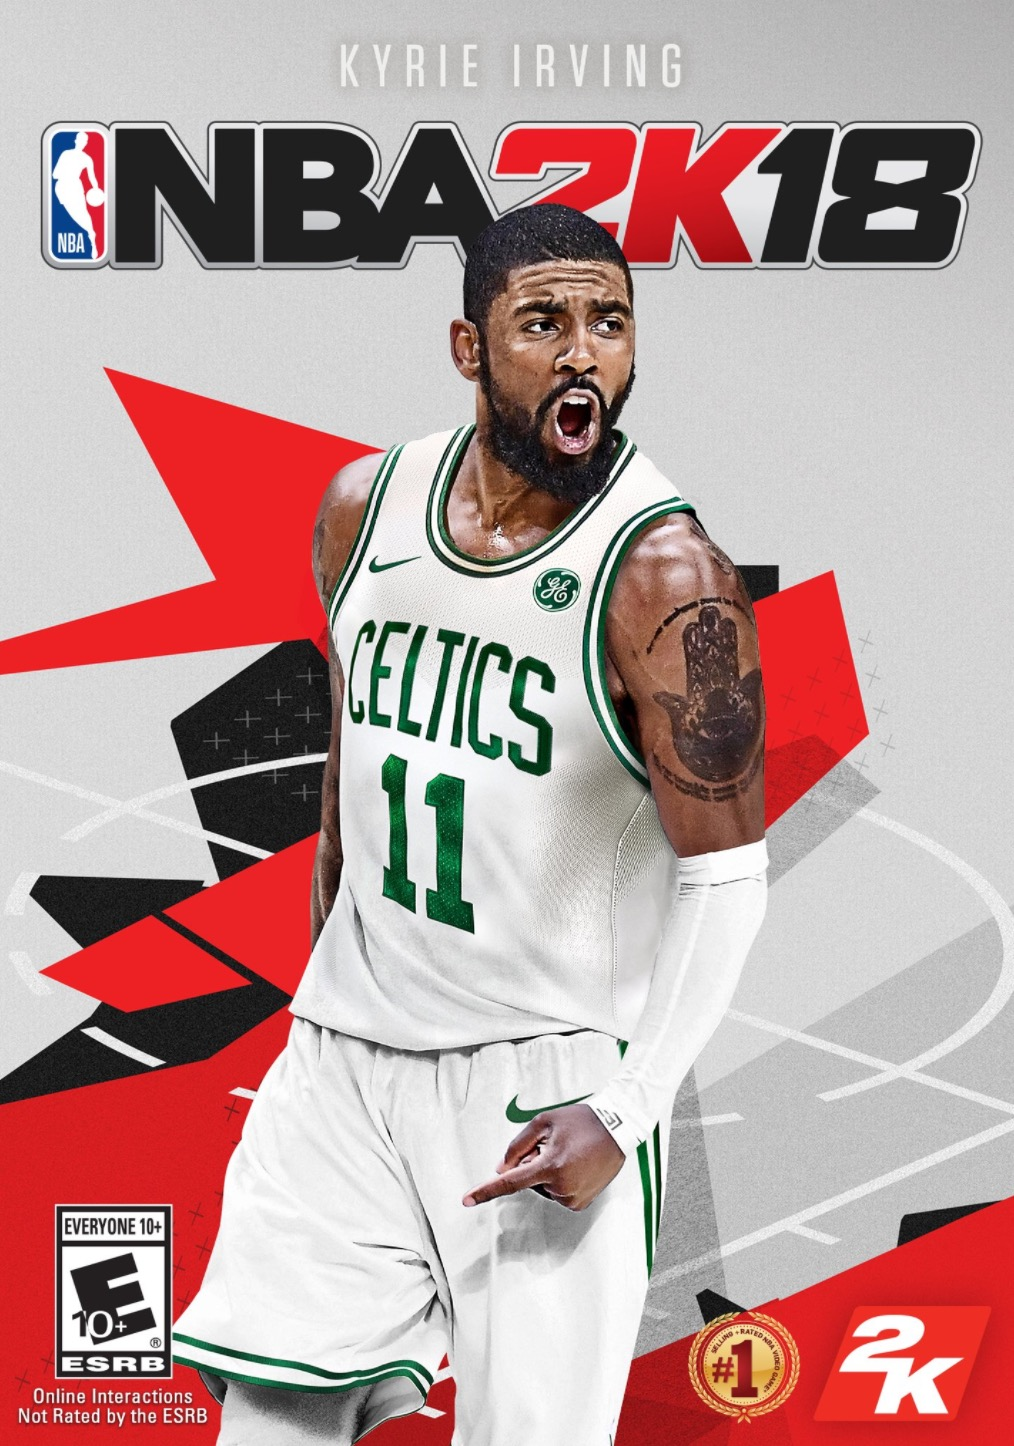 Purchase NBA 2K19 New at GameStop and receive the Locker Room DLC! Purchase NBA 2K19 New at GameStop and receive the Locker Room DLC which includes 4 MyTeam Packs! *While Supplies Last/5(K).